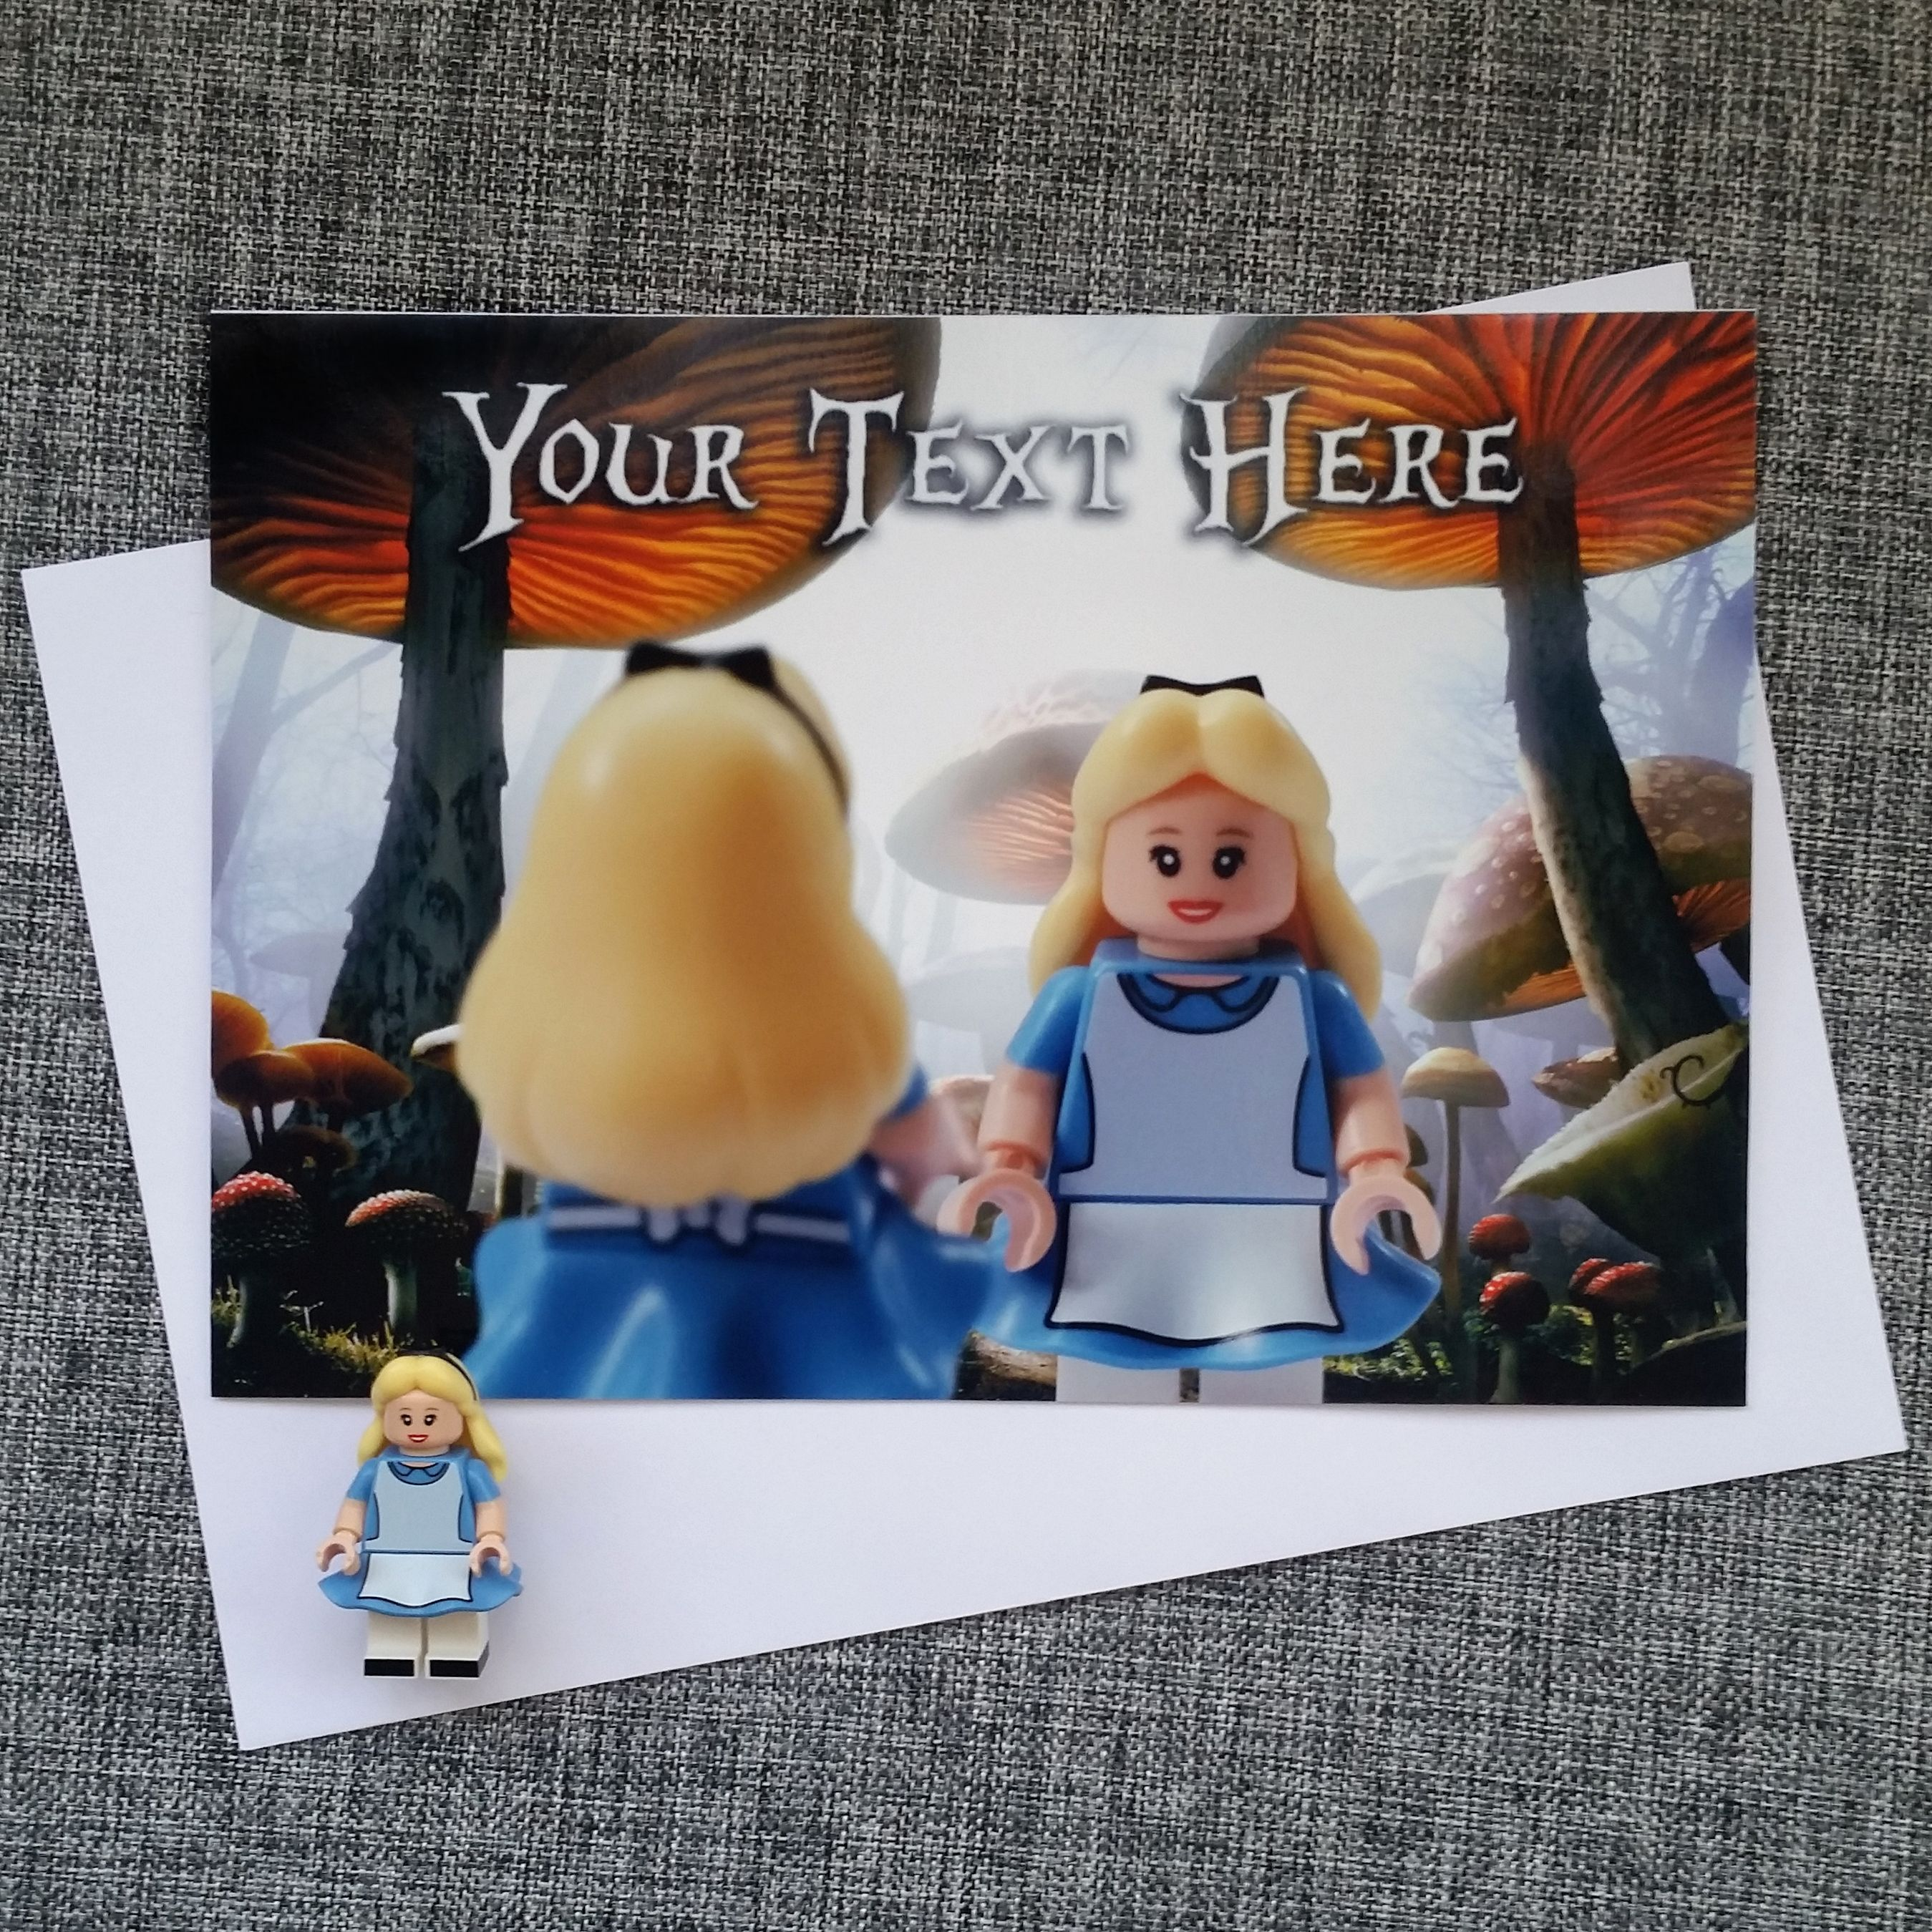 Lego Disney Alice In Wonderland Personalised Card From Magical Minifigures On Etsy Personalized Birthday Cards Handmade Birthday Cards Greeting Cards Handmade